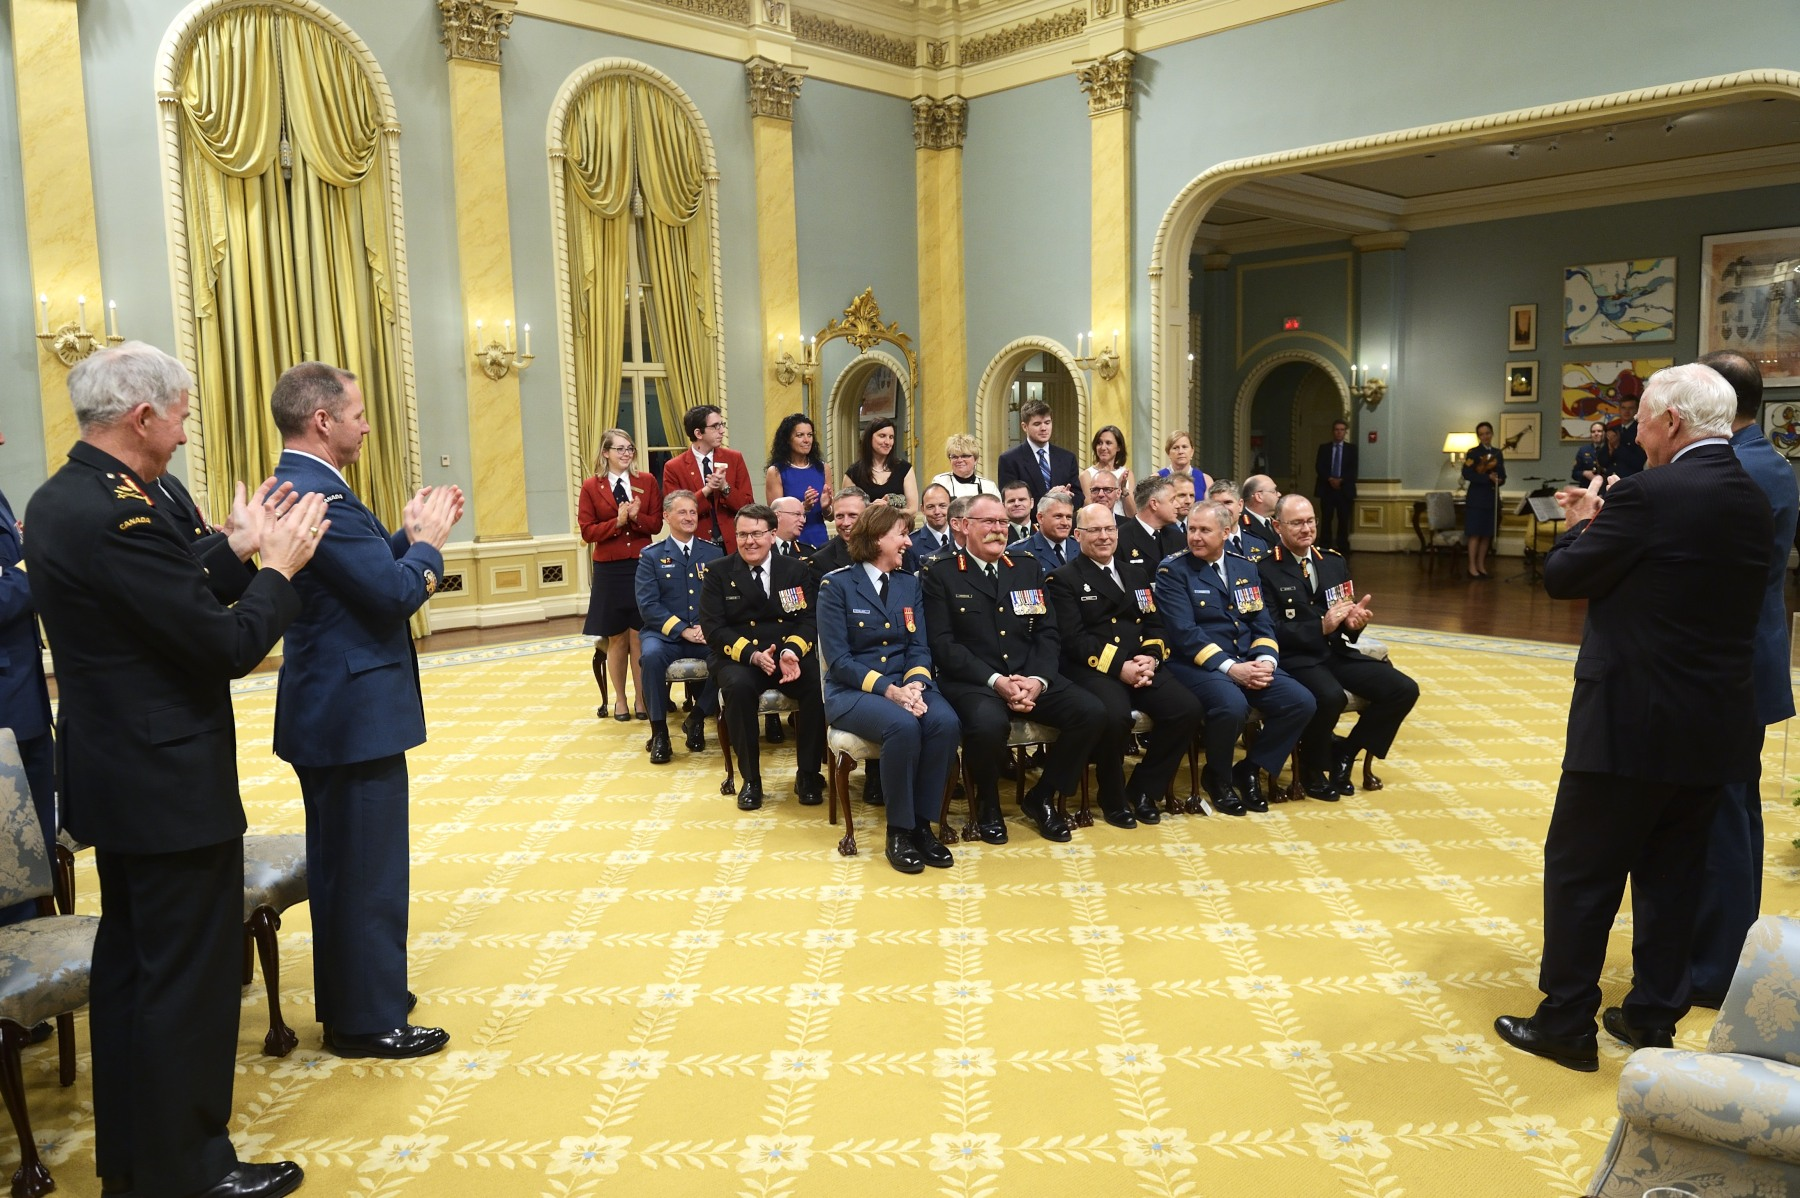 The members honoured during the ceremony were newly appointed general officers and flag officers.